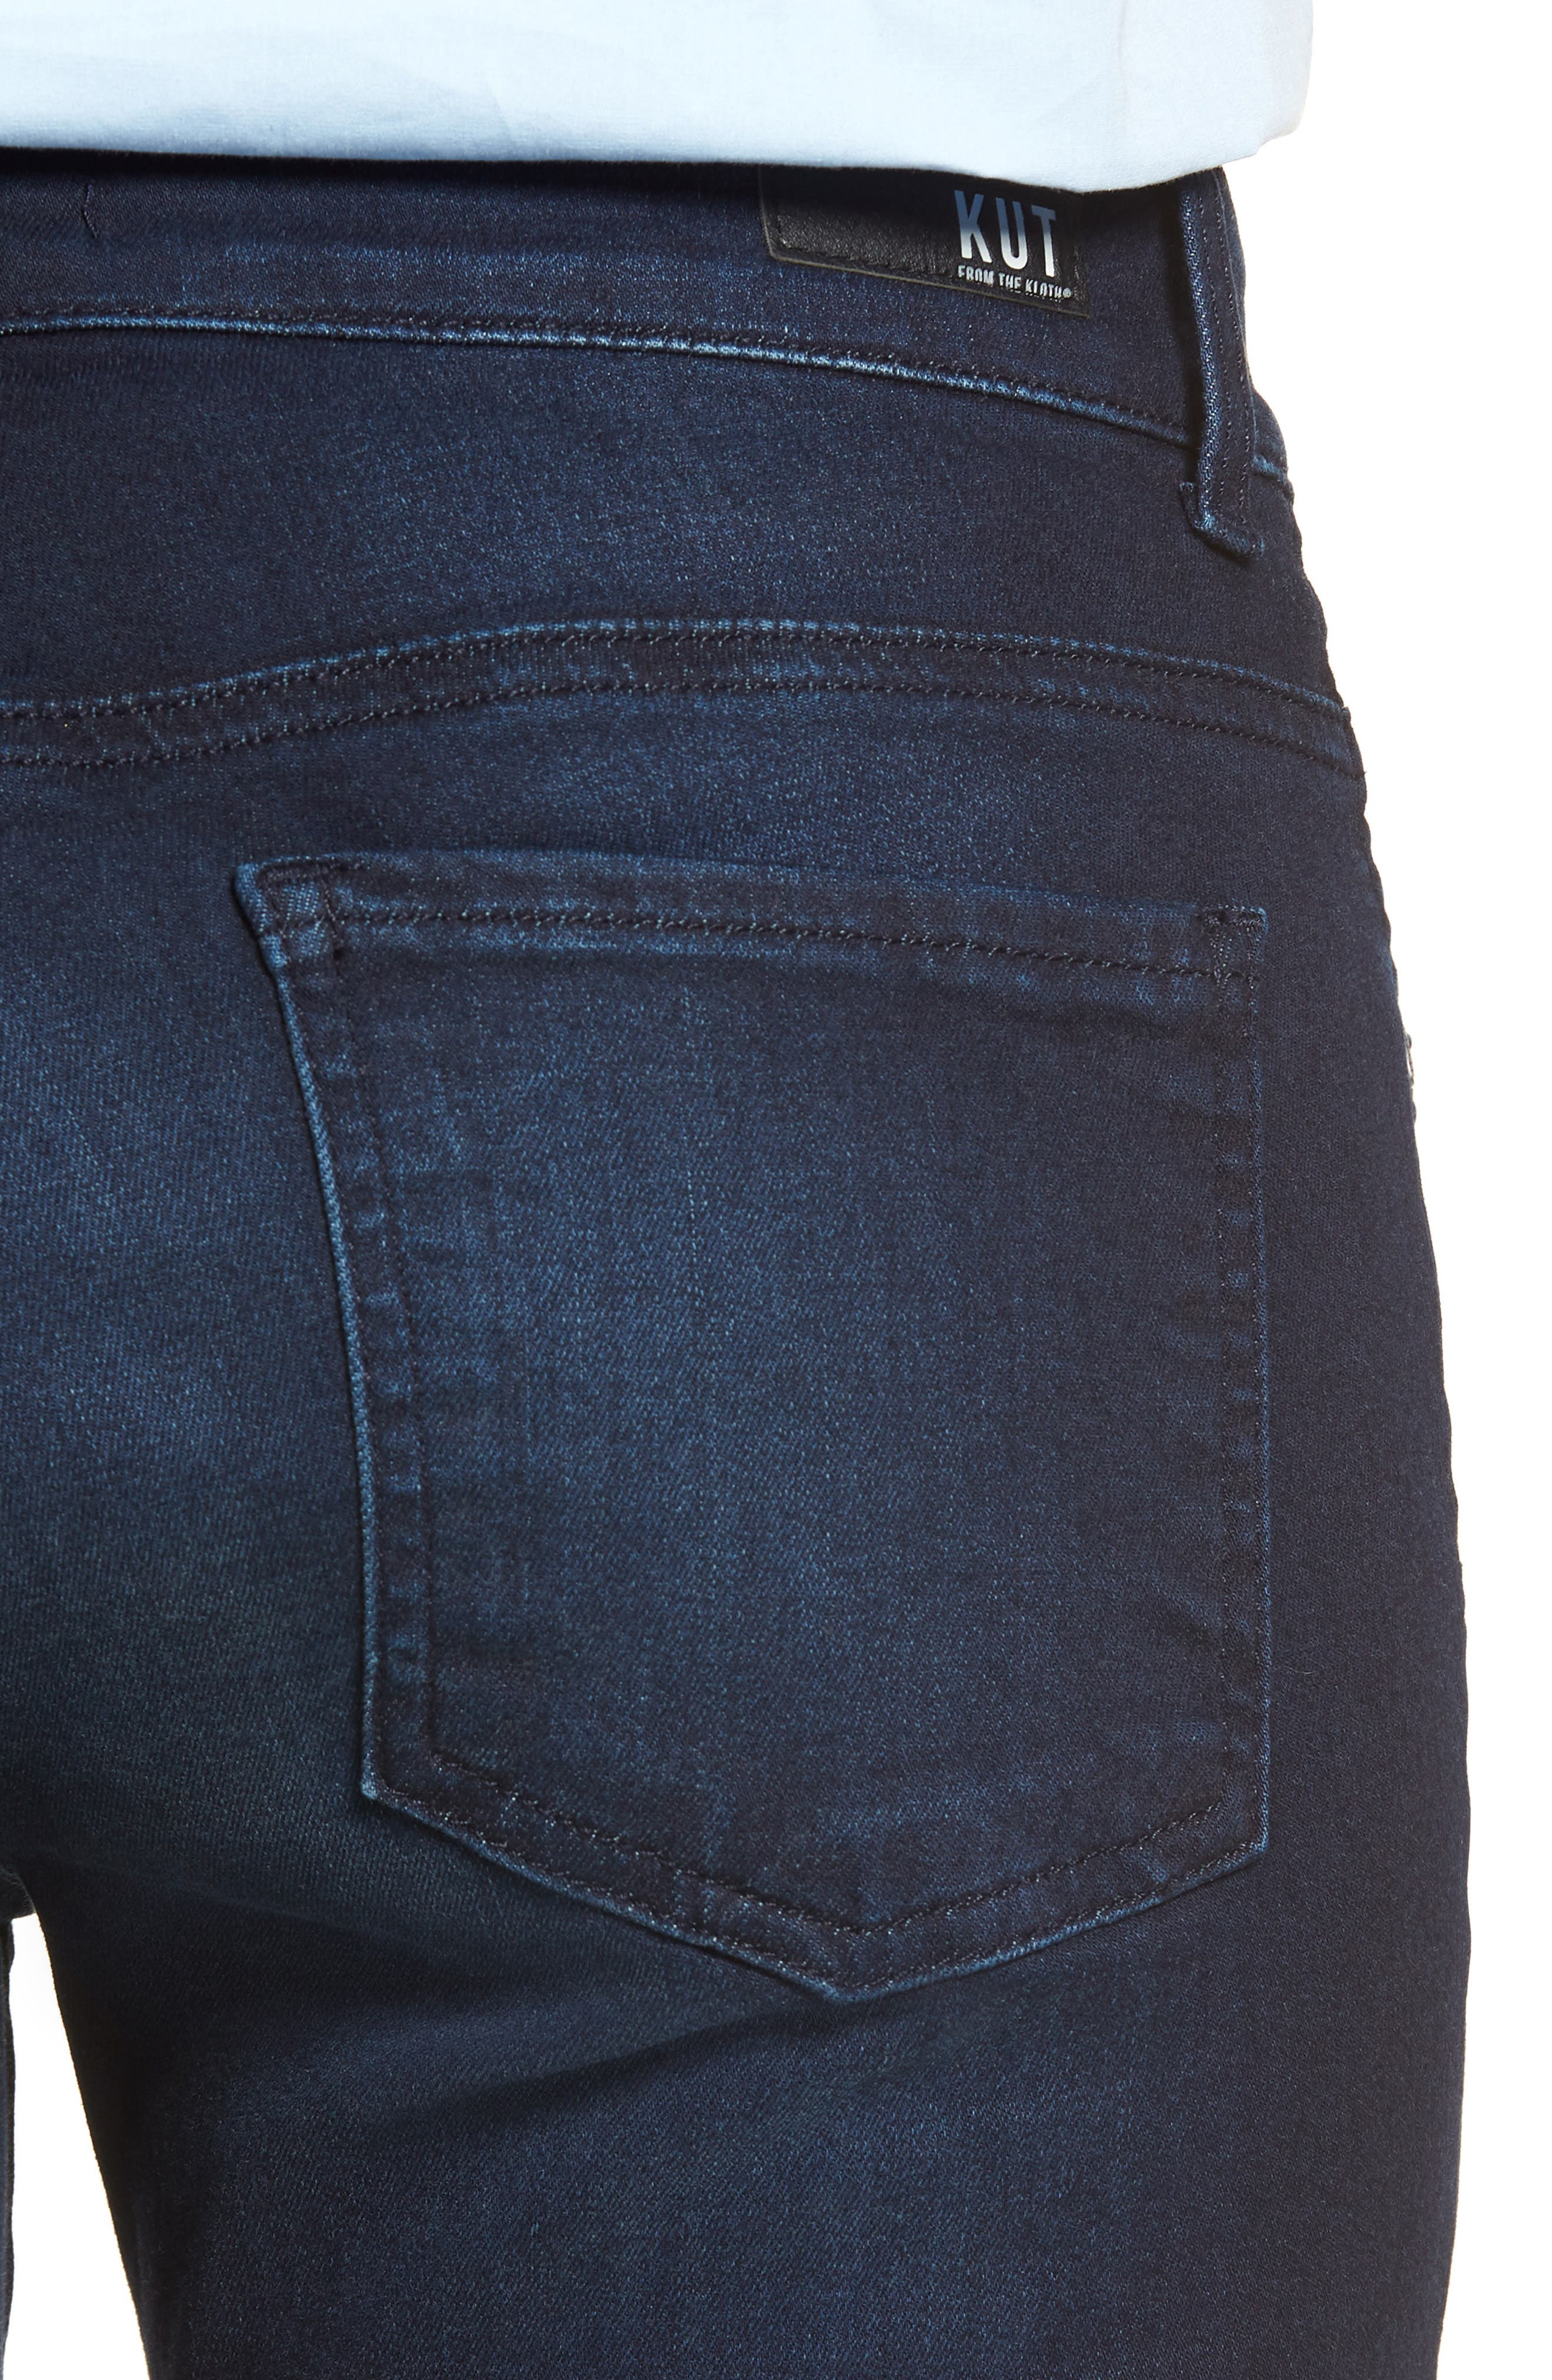 KUT FROM THE KLOTH, Natalie Stretch Bootleg Jeans, Alternate thumbnail 4, color, LIBERATING